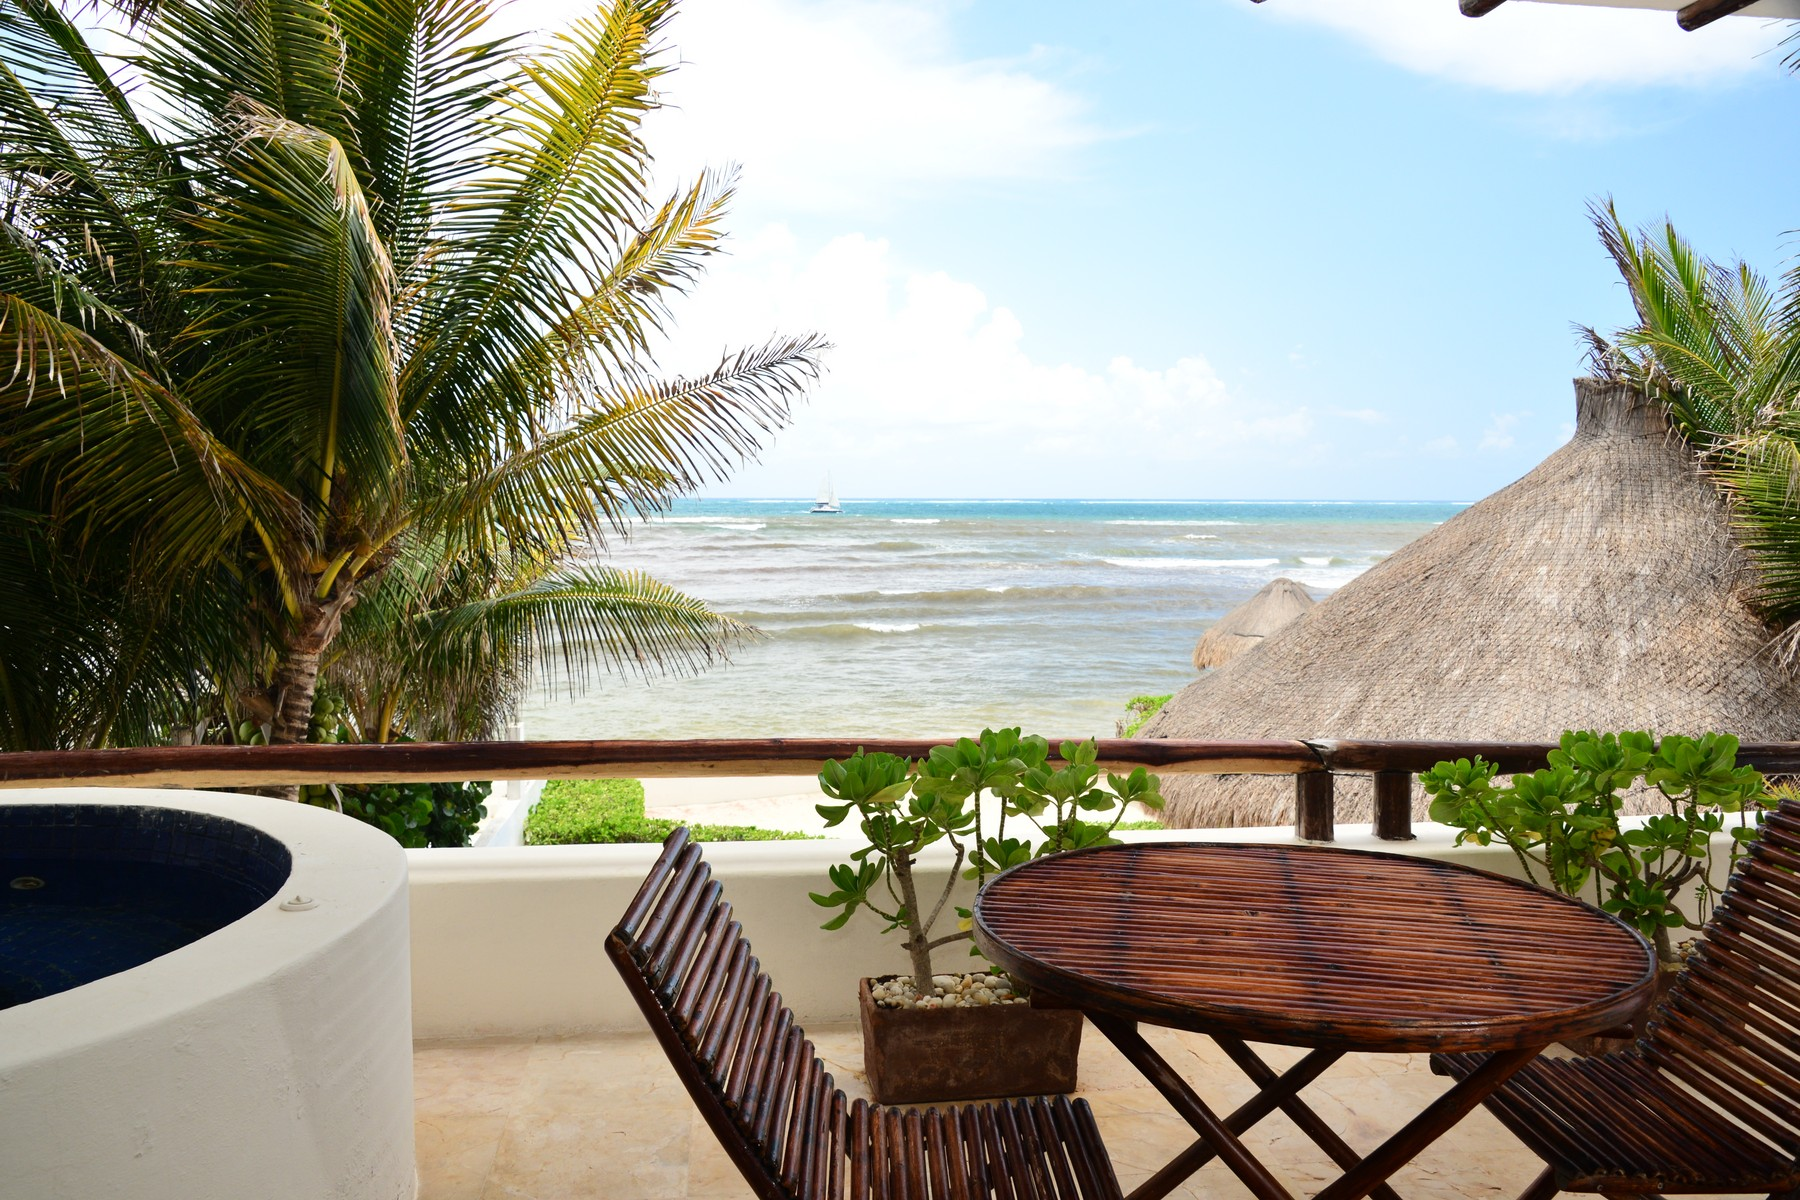 Additional photo for property listing at SEAFRONT PARADISE UNIT #201 Seafront Paradise – Unit #201 Predio Maria Irene, Supermzna 12, Mzna 21 13 Puerto Morelos, Quintana Roo 77930 Mexico